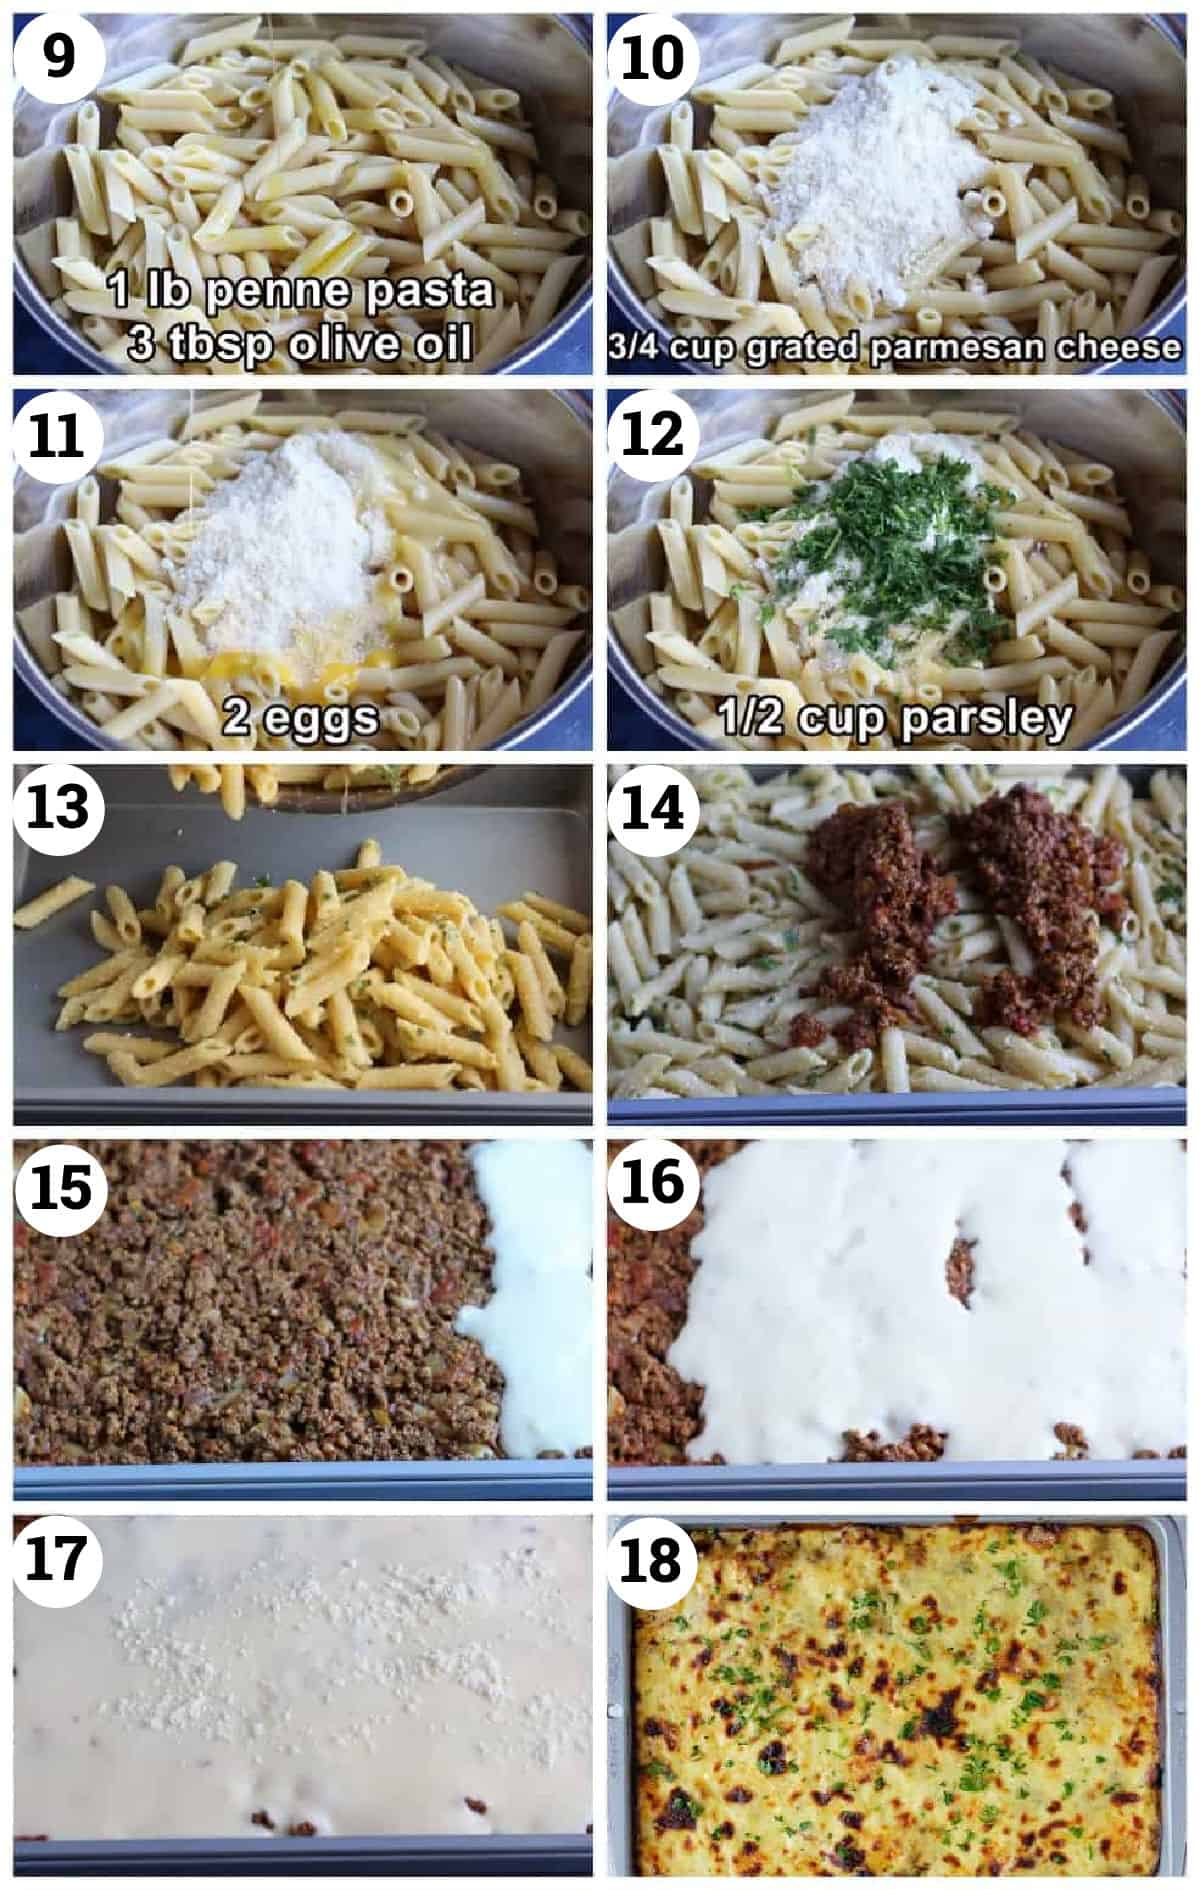 cook the pasta, add parmesan, add eggs and parsley. Layer with the meat sauce and white sauce. Bake in the oven.